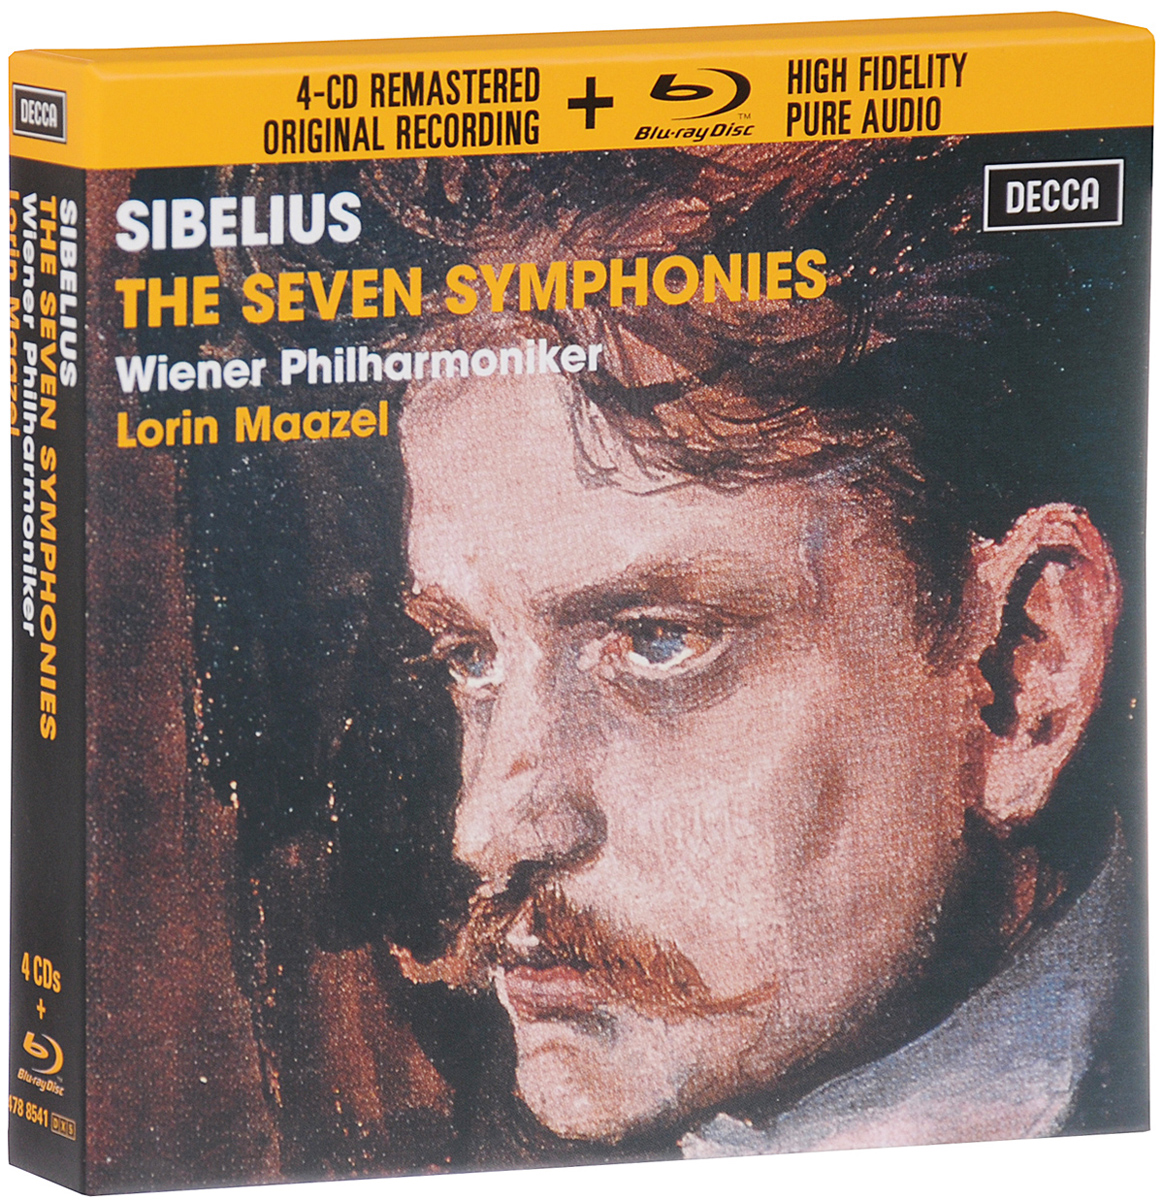 Лорин Маазель,Wiener Philharmoniker Lorin Maazel. Sibelius. The Seven Symphonies. Limited Edition (4 CD + Blu-Ray Audio) a garnier scherzo no 1 op 11